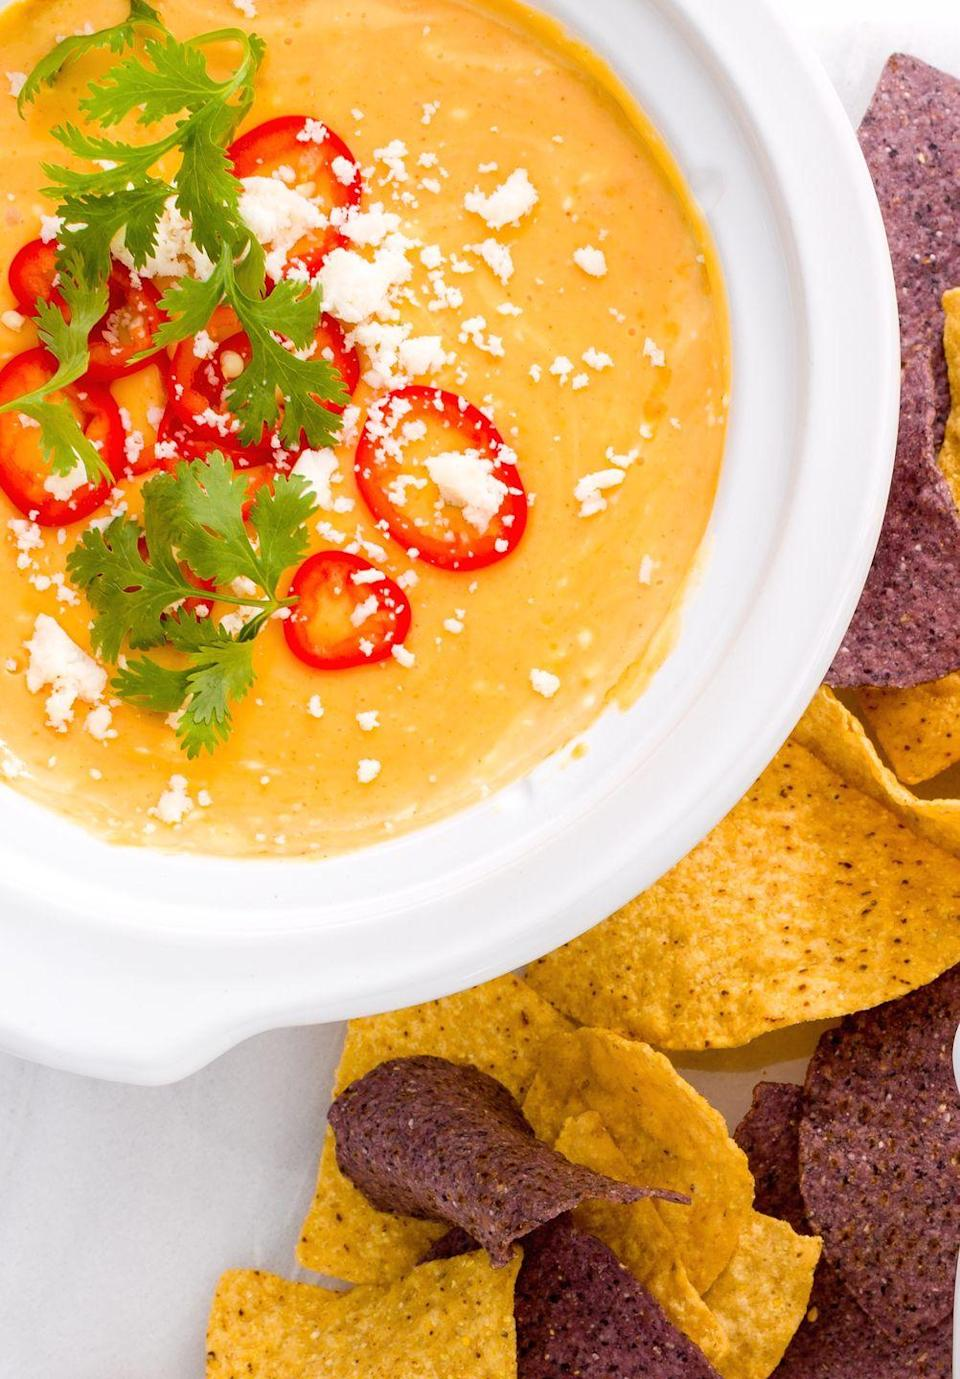 """<p>When Tex-mex makes you say """"Oh hell yes.""""</p><p>Get the recipe from <a href=""""https://www.delish.com/cooking/recipe-ideas/recipes/a44677/slow-cooker-queso-recipe/"""" rel=""""nofollow noopener"""" target=""""_blank"""" data-ylk=""""slk:Delish"""" class=""""link rapid-noclick-resp"""">Delish</a>.</p>"""